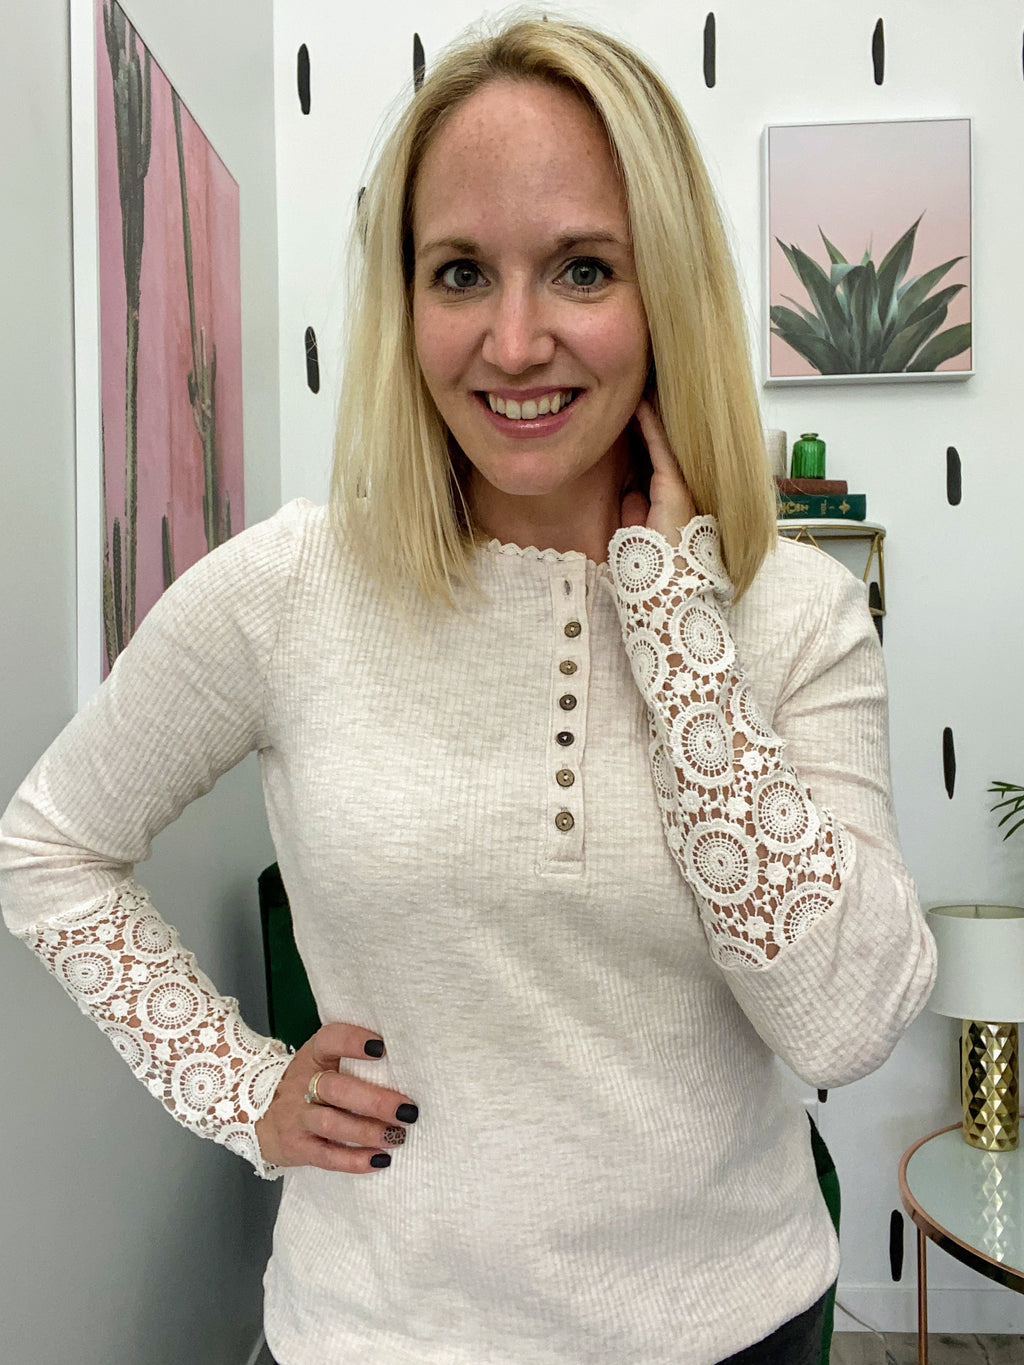 Honey Bee Crochet Sleeve Top